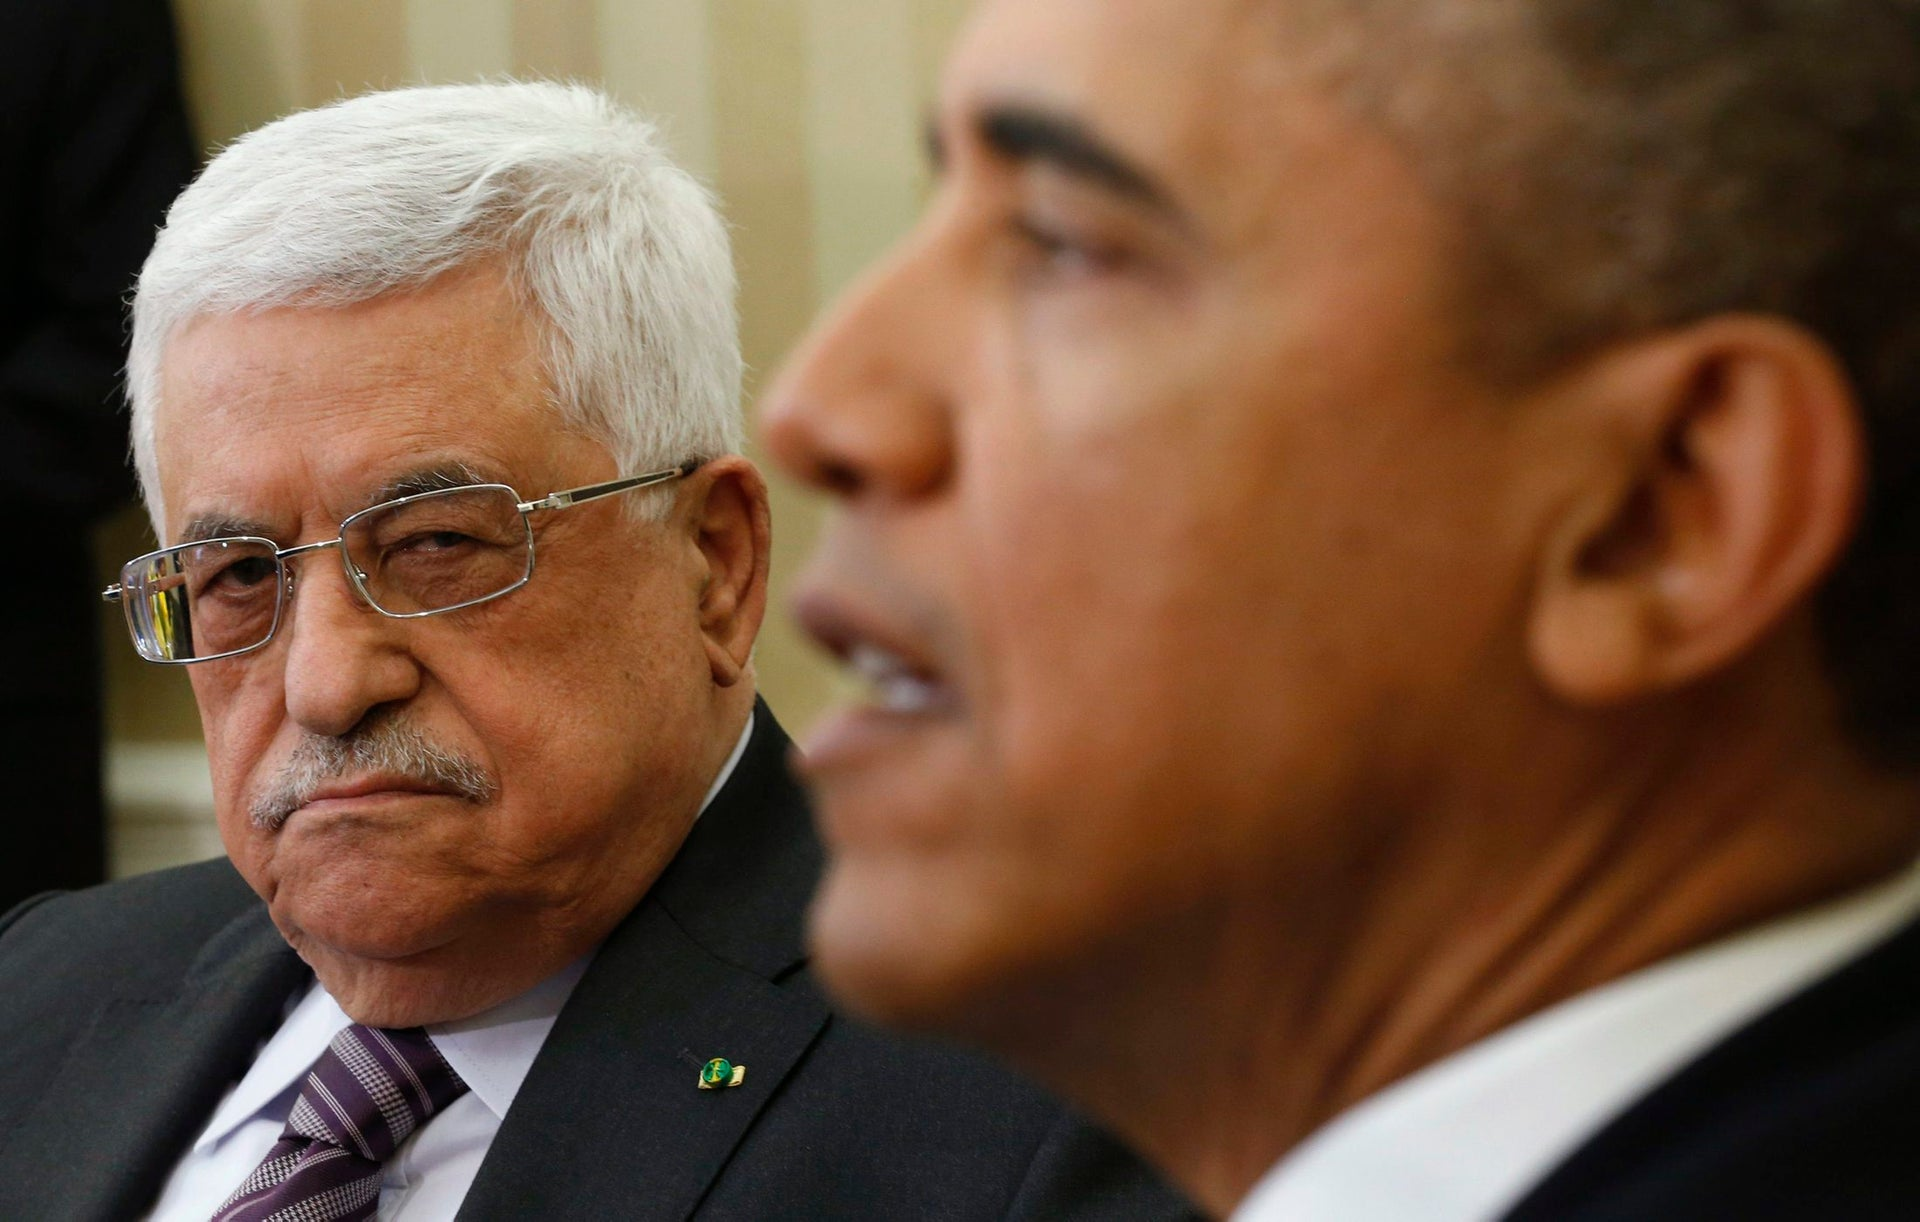 Palestinian Authority President Mahmoud Abbas meeting with then-U.S. President Barack Obama at the White House in Washington, March 17, 2014.